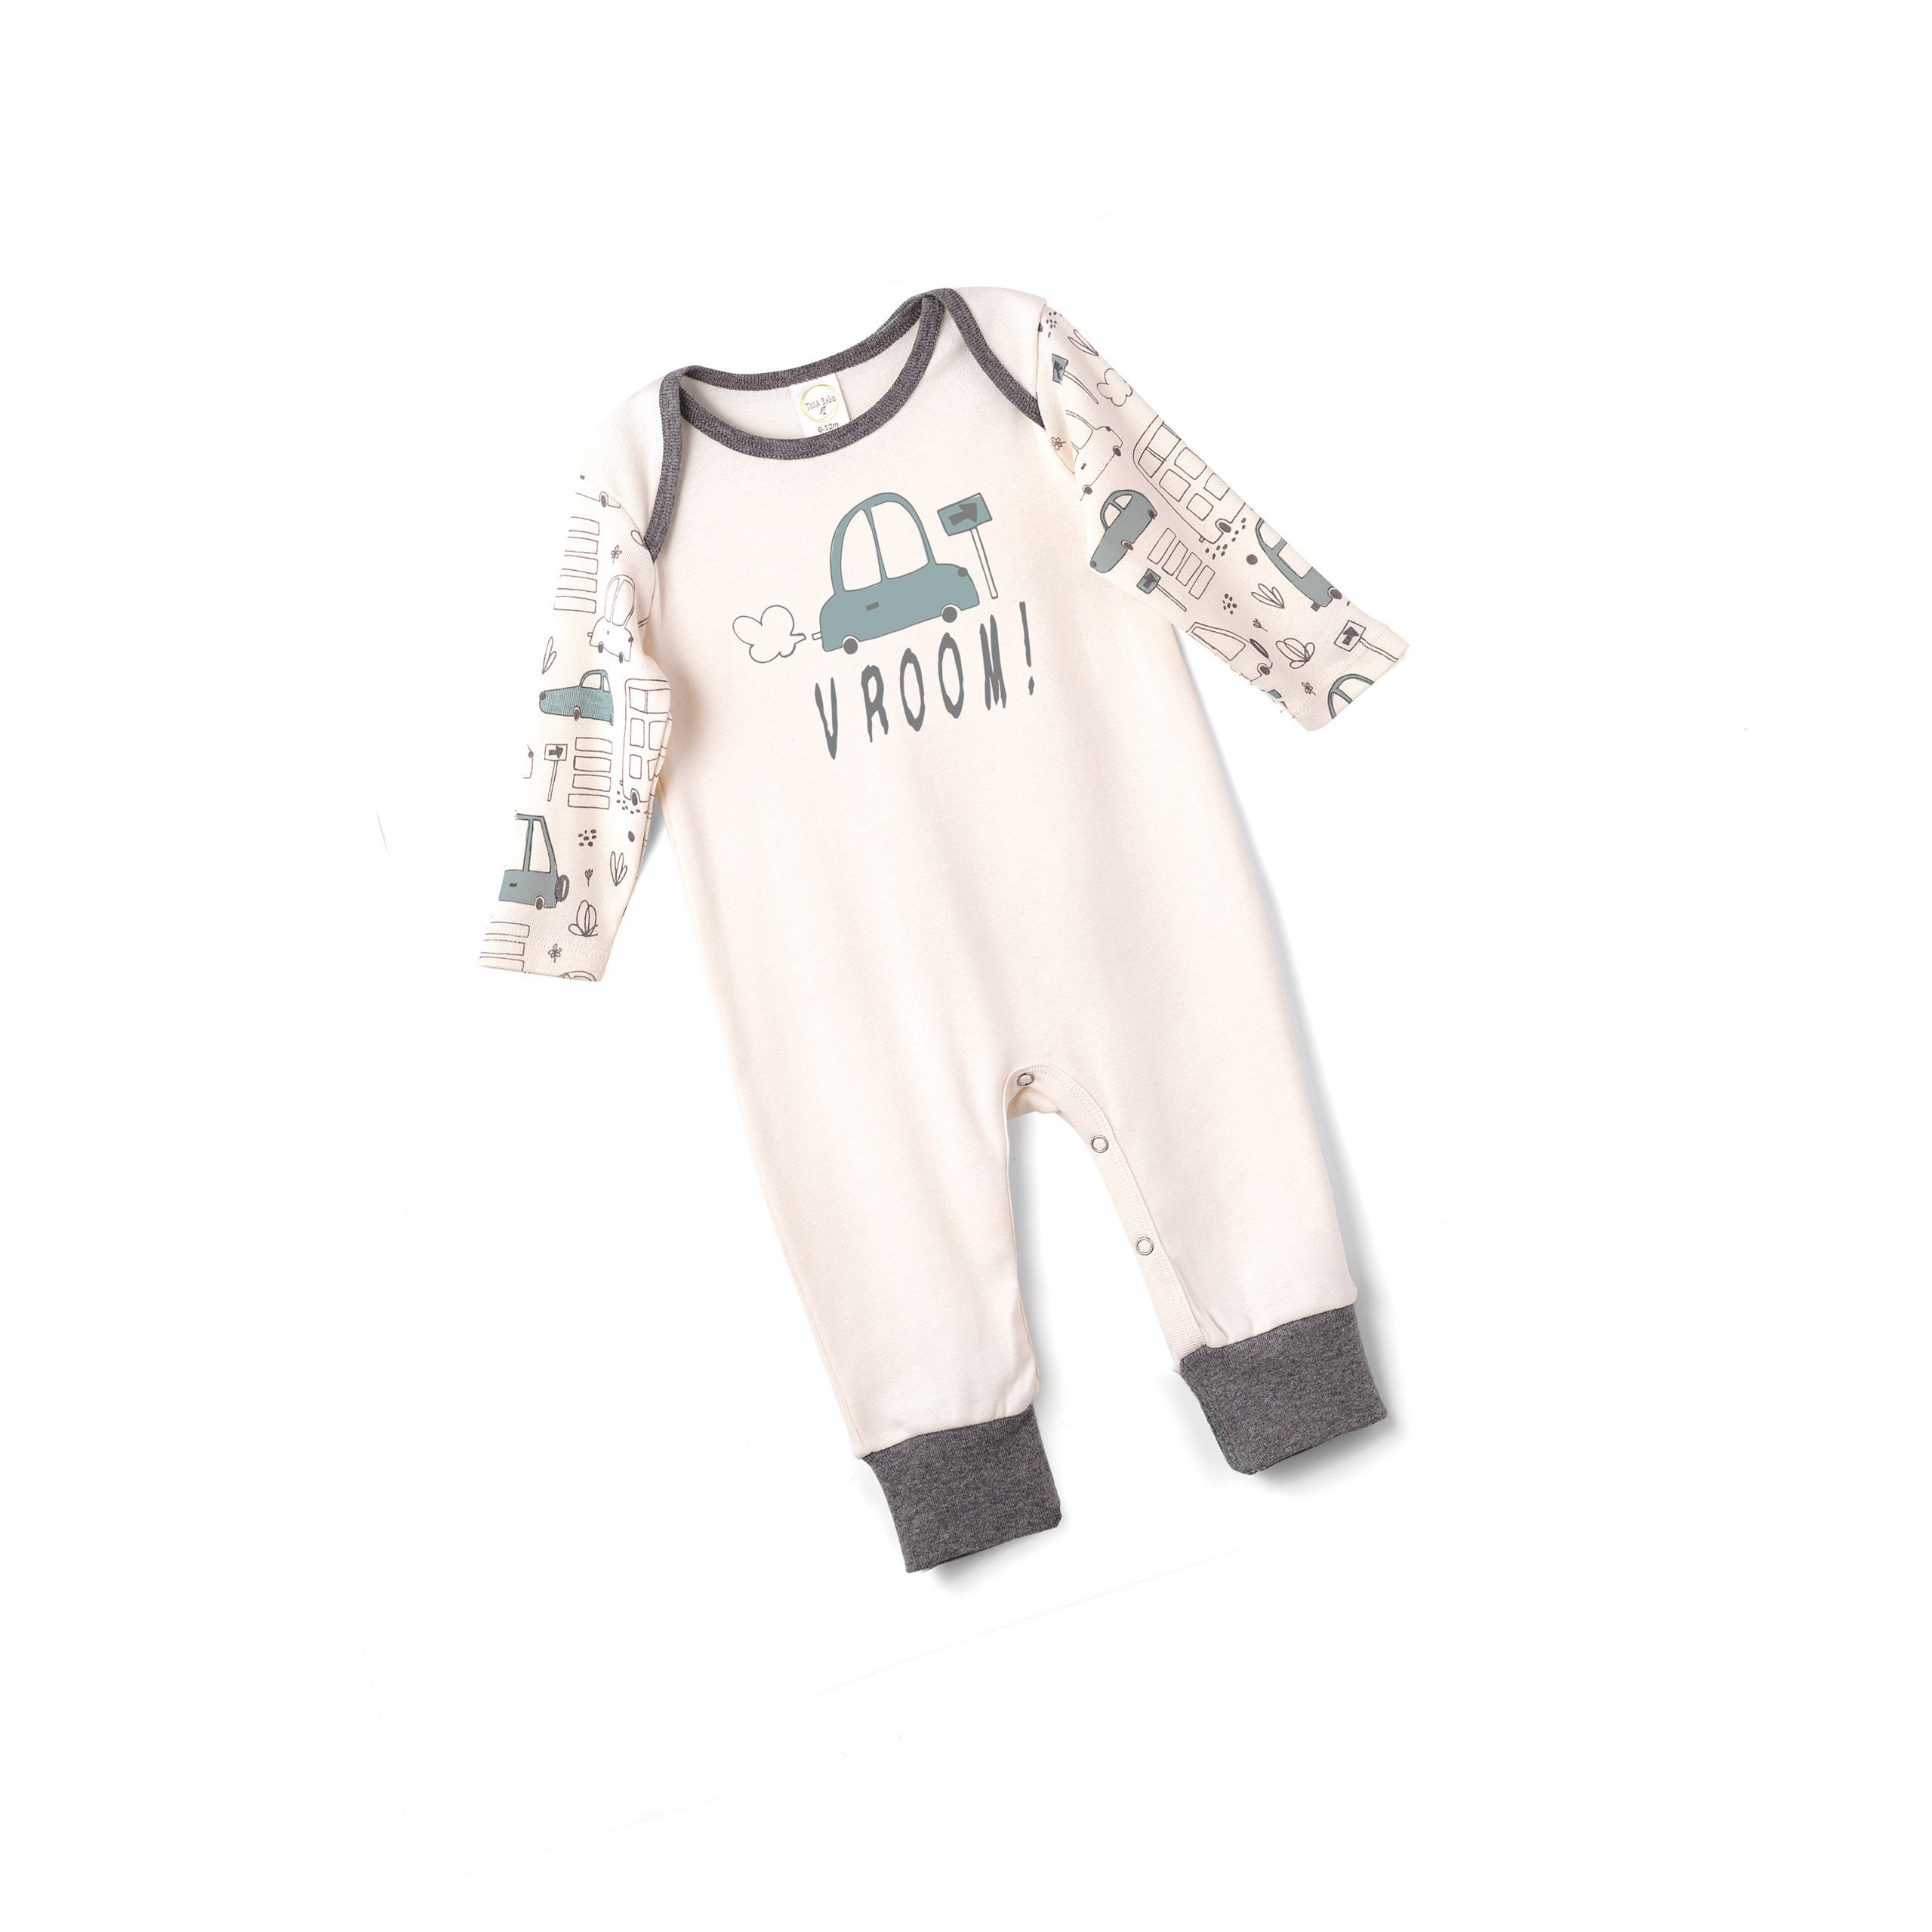 15e35b1cd1b7 WHOLESALE BABY CLOTHES Baby Boy Onesie Cars Outfit